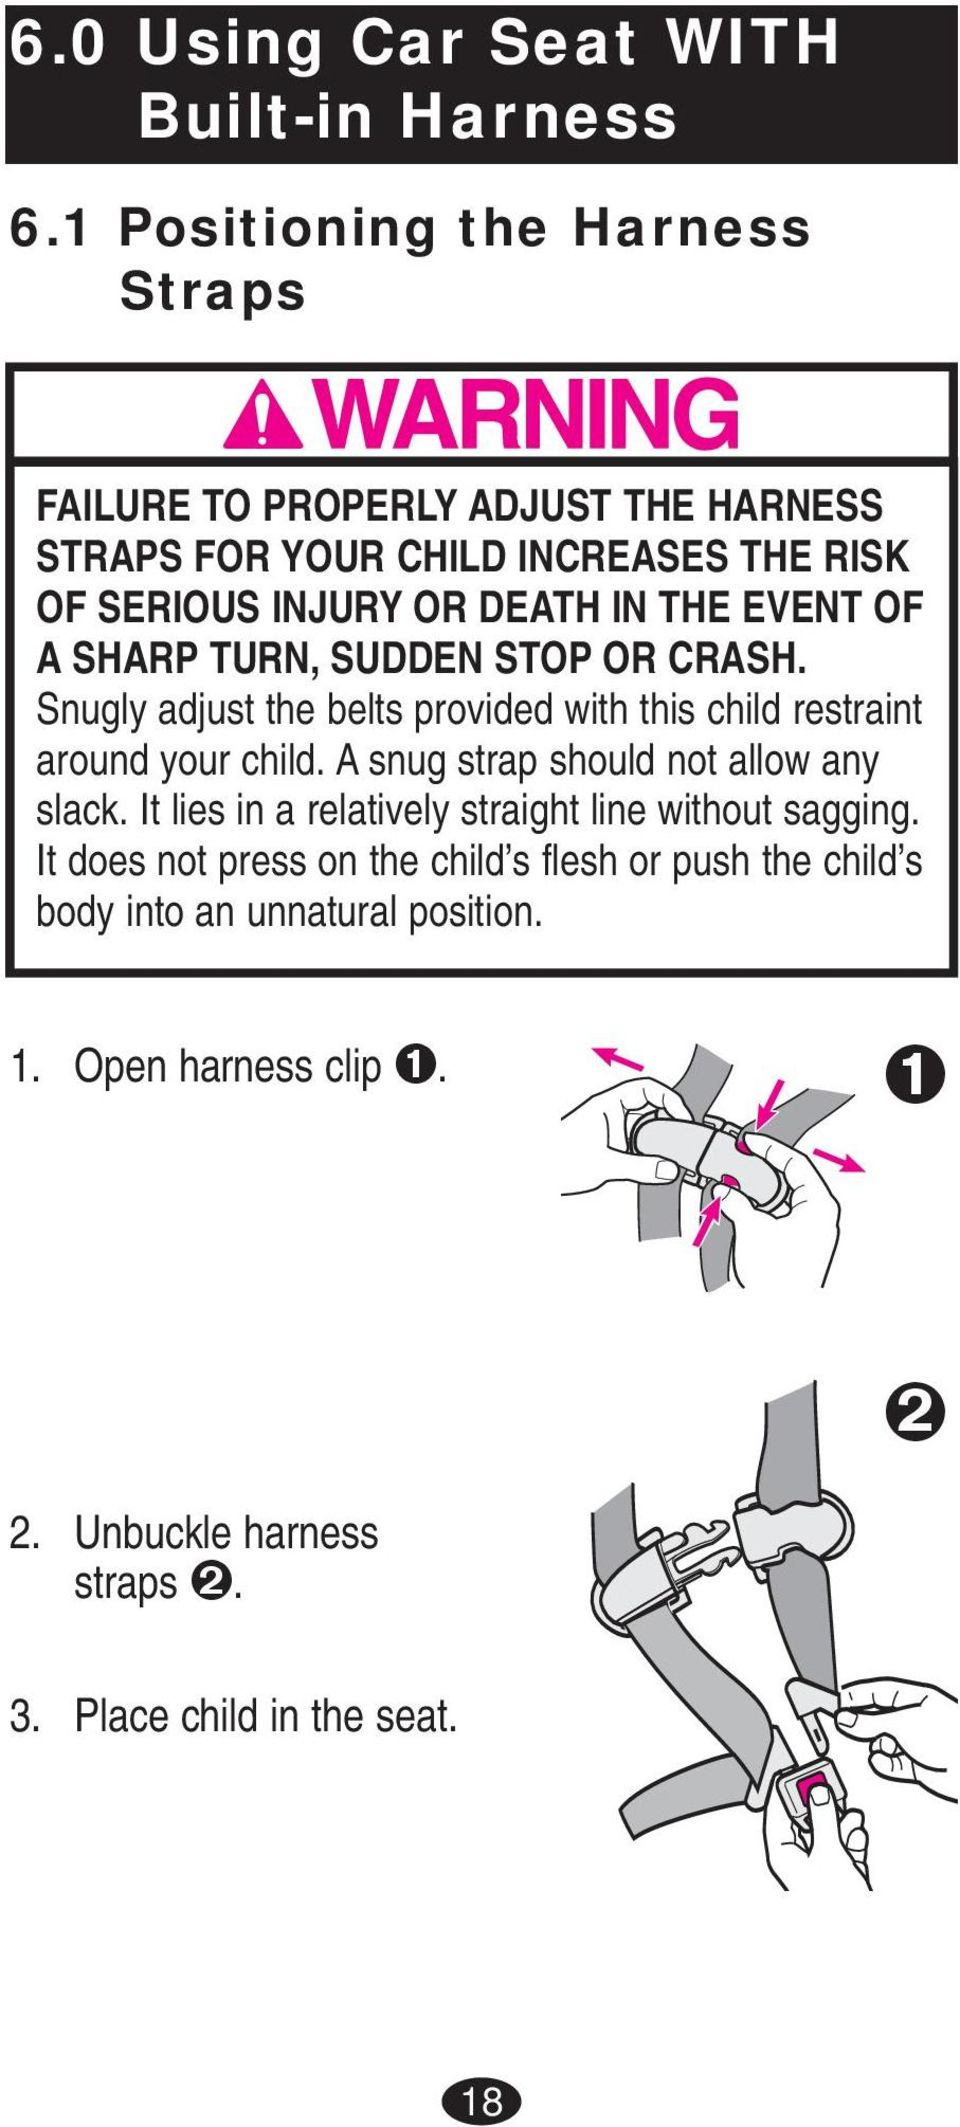 EVENT OF A SHARP TURN, SUDDEN STOP OR CRASH. Snugly adjust the belts provided with this child restraint around your child.